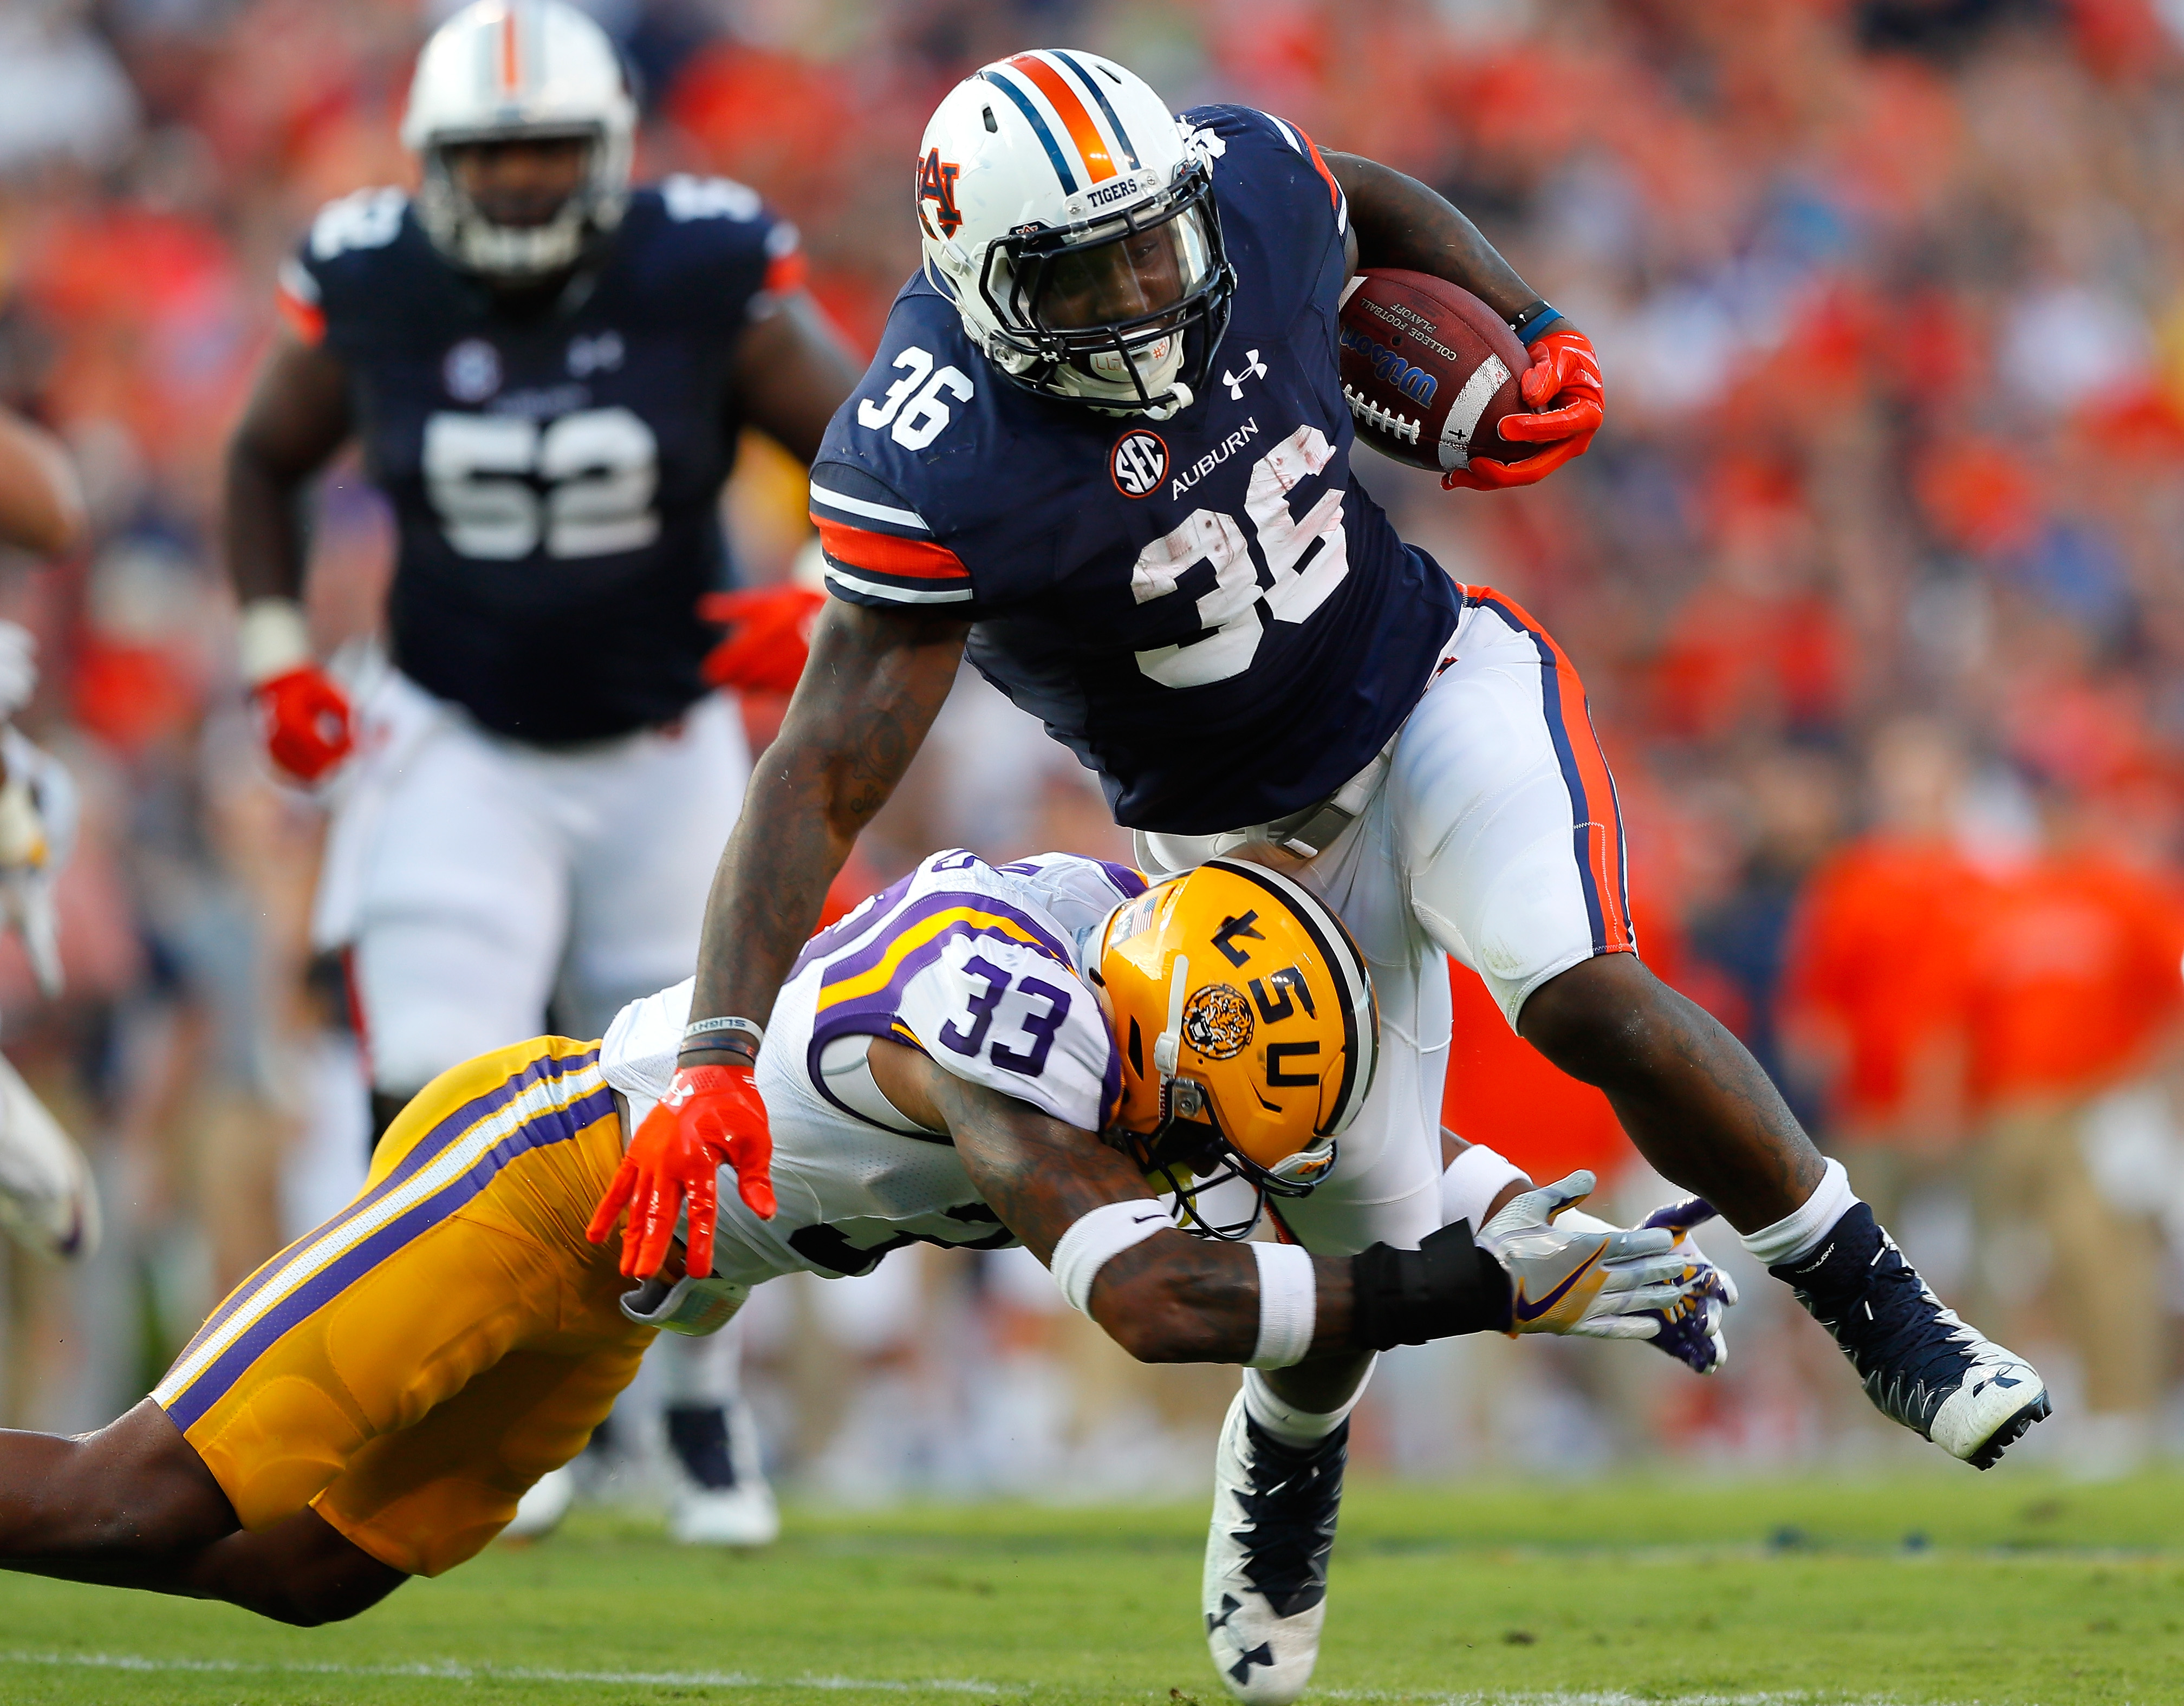 LSU's Jamal Adams is one of two safeties with the potential to go in the top five. (Getty Images)